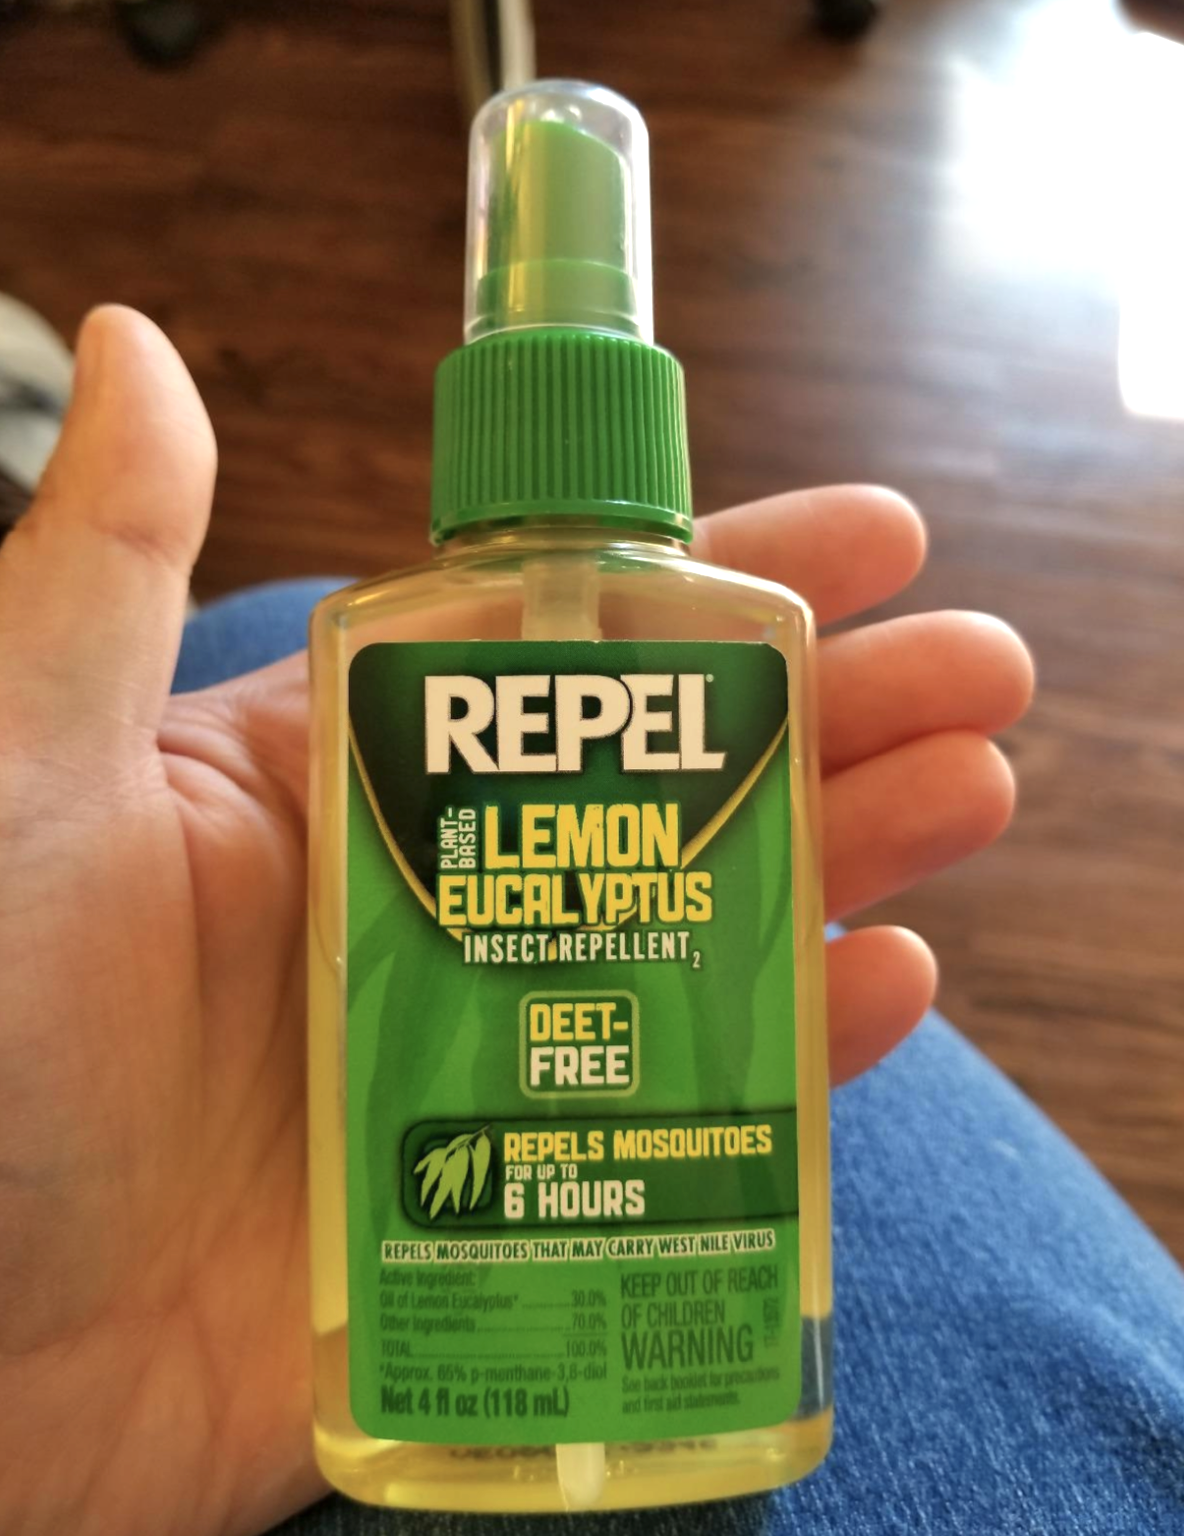 a reviewer's hand holding the bug spray bottle